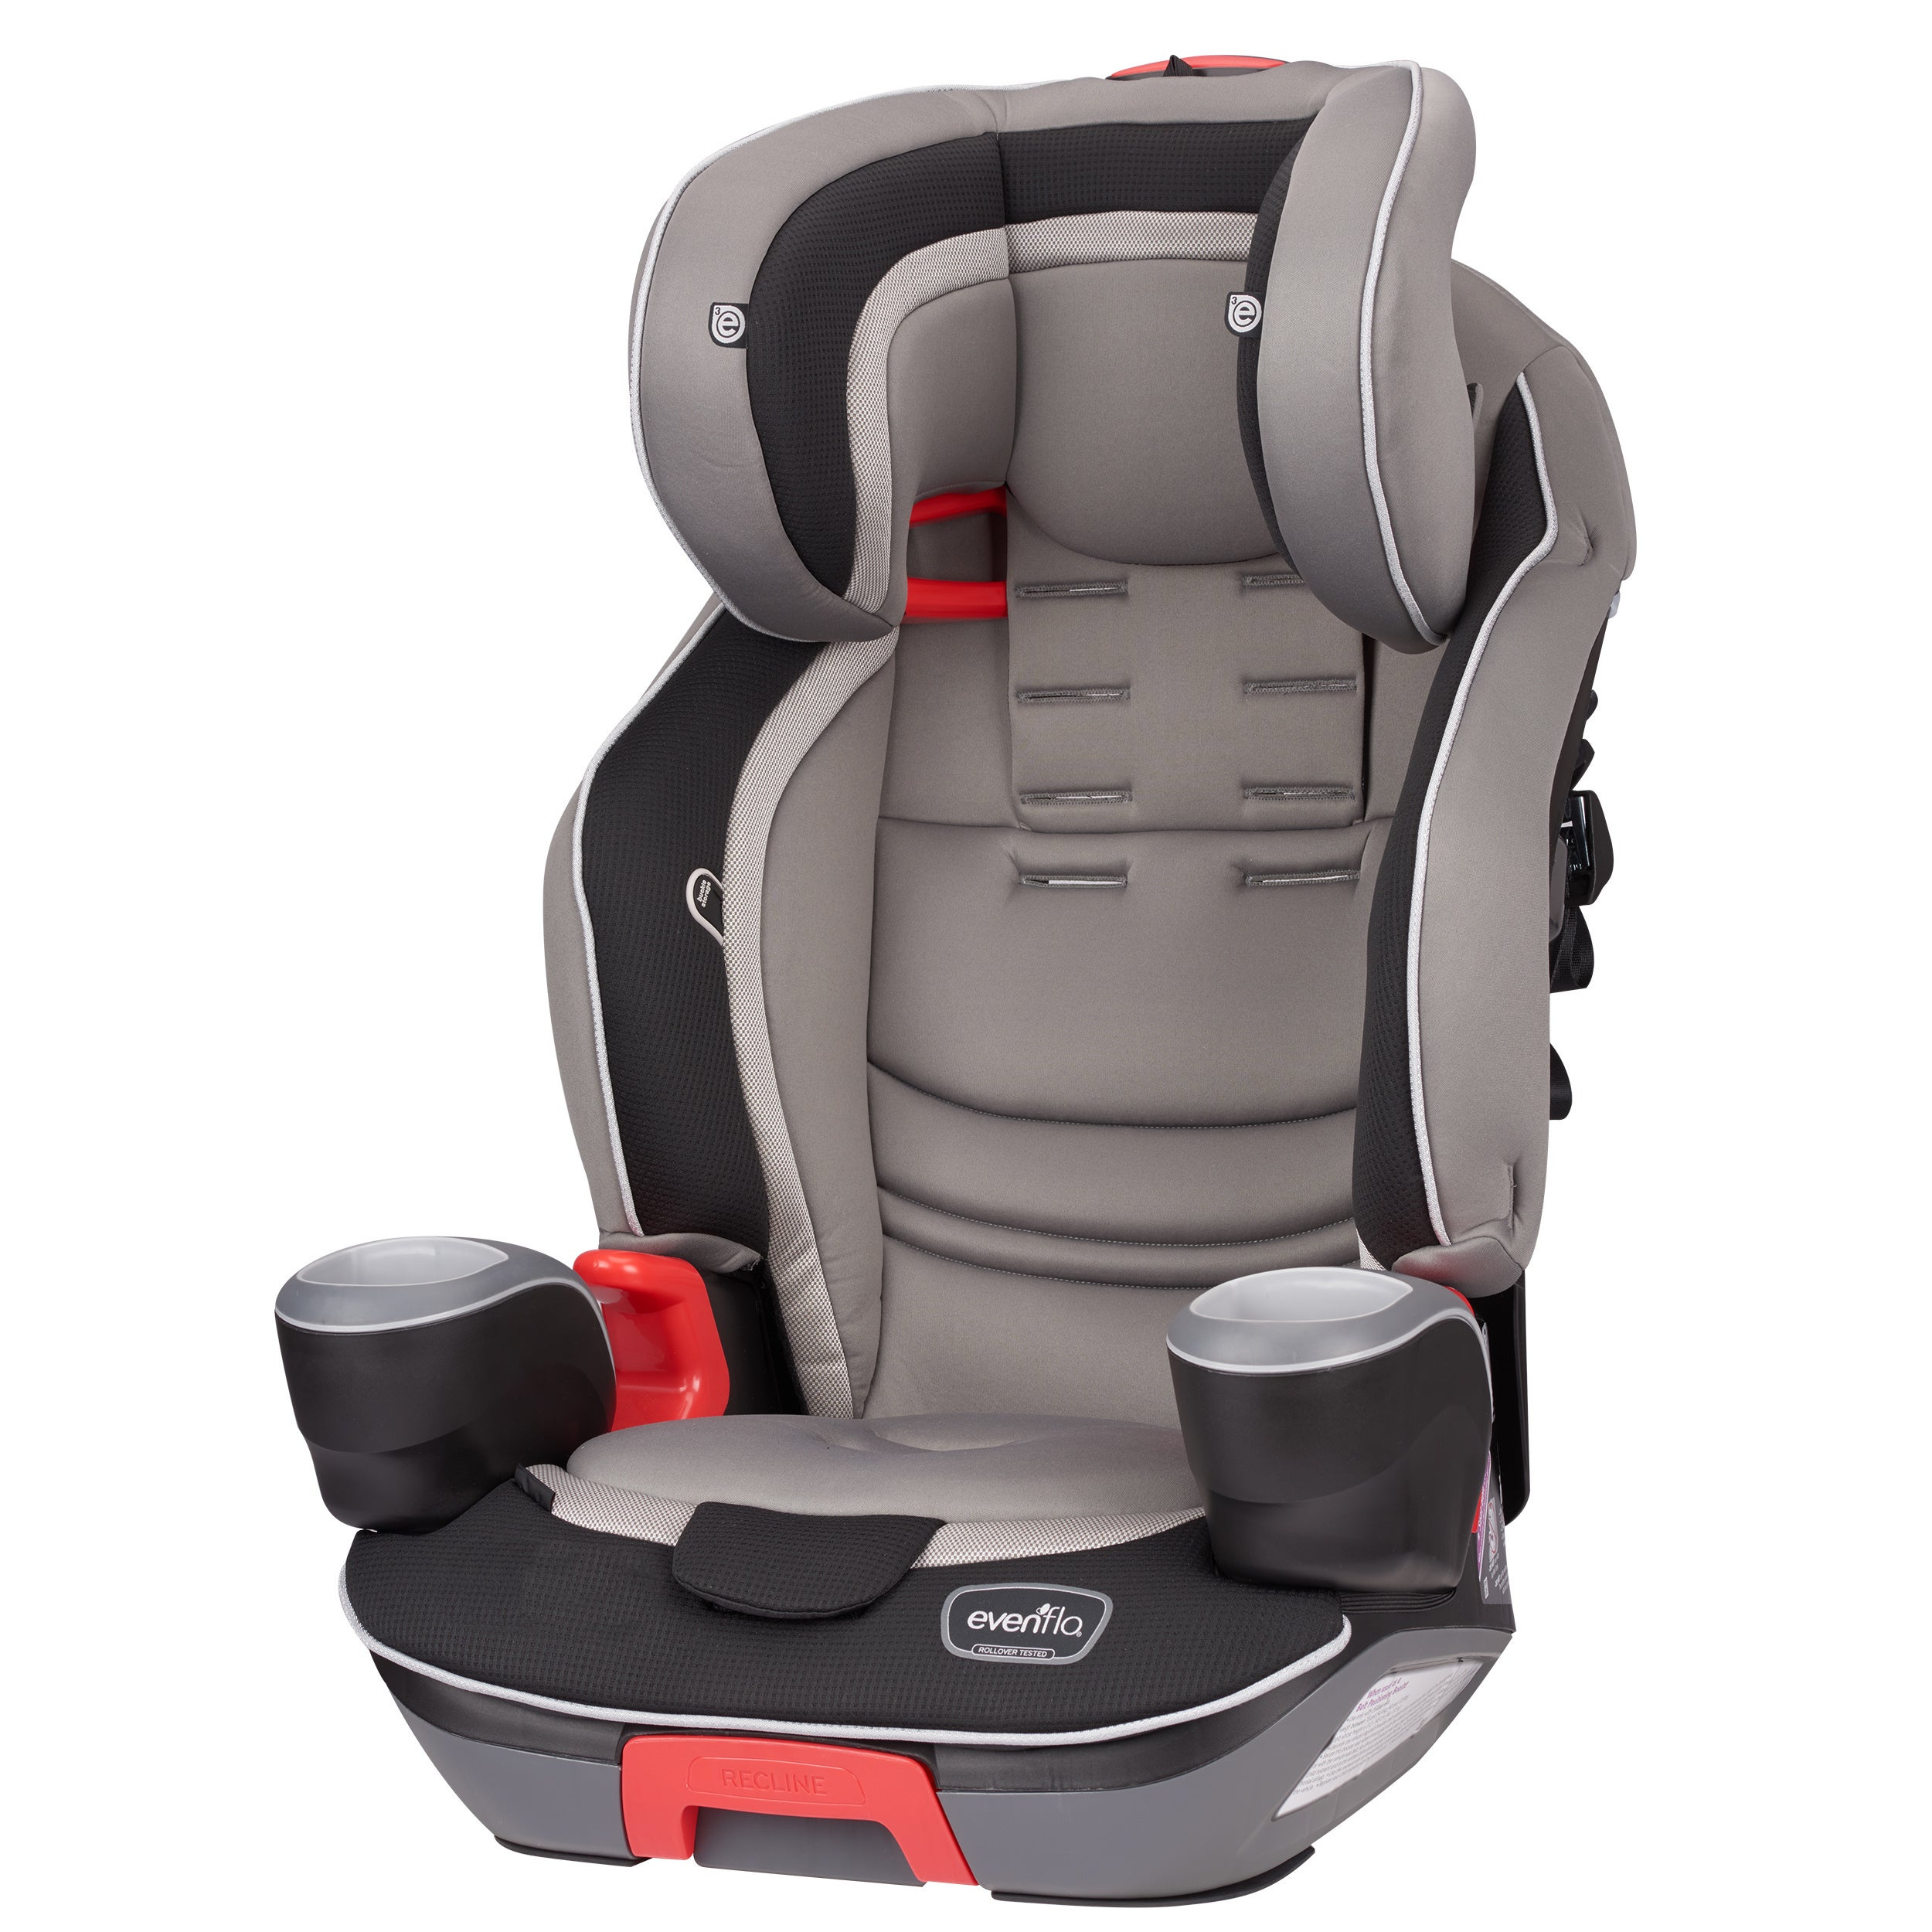 Shop Evenflo Platinum Evolve 3 In 1 Combination Booster Car Seat Theo